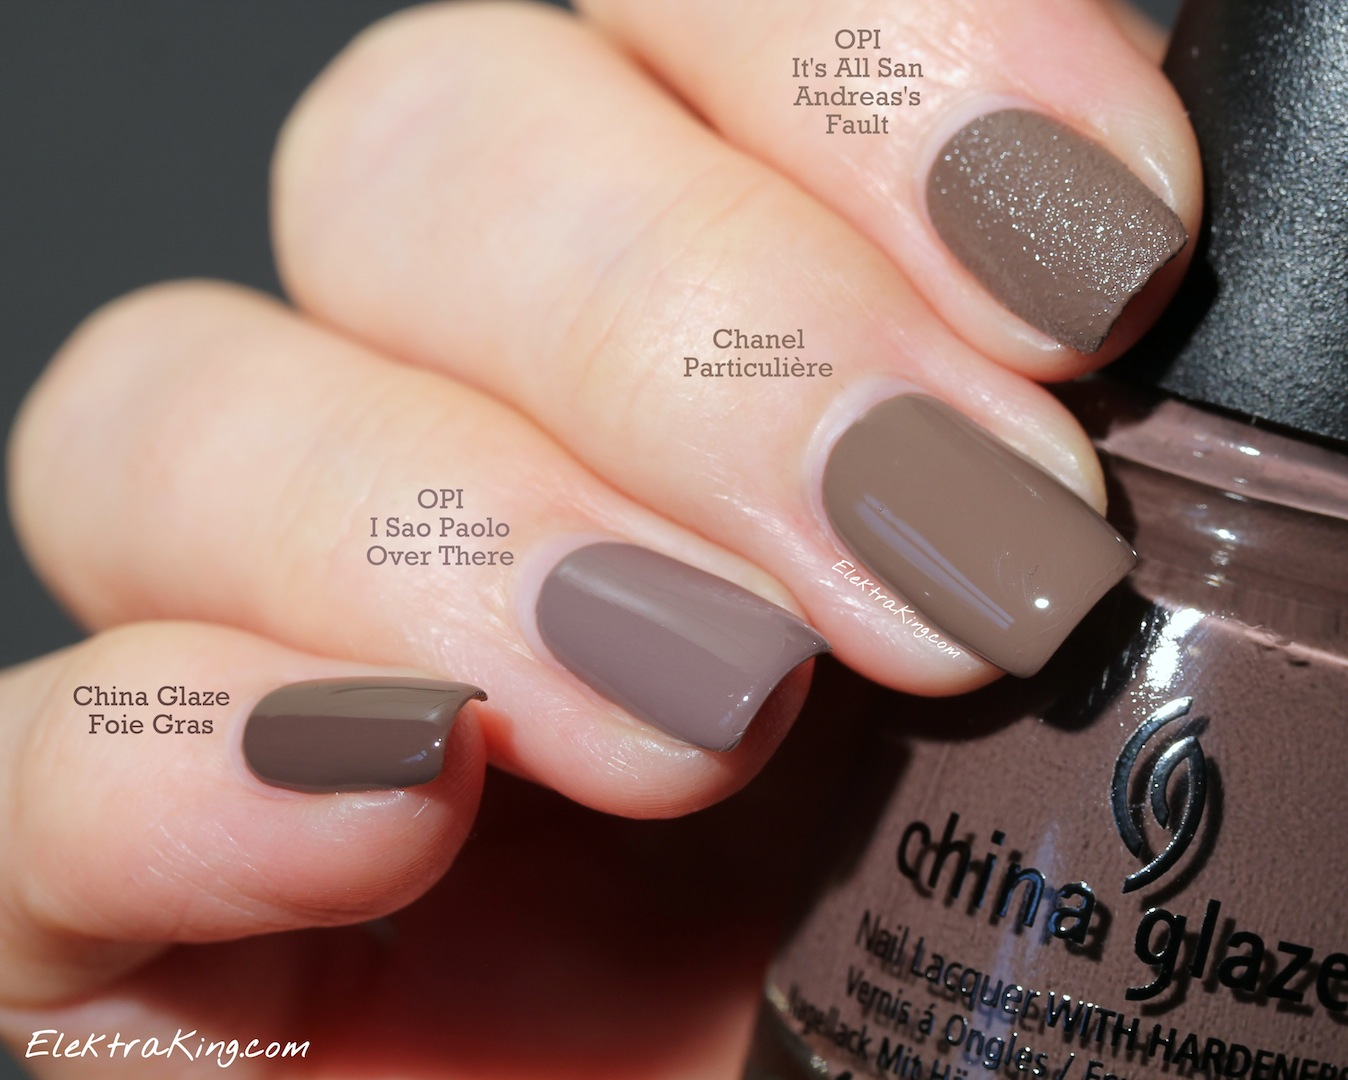 Taupe is the new Red – Elektra Deluxe